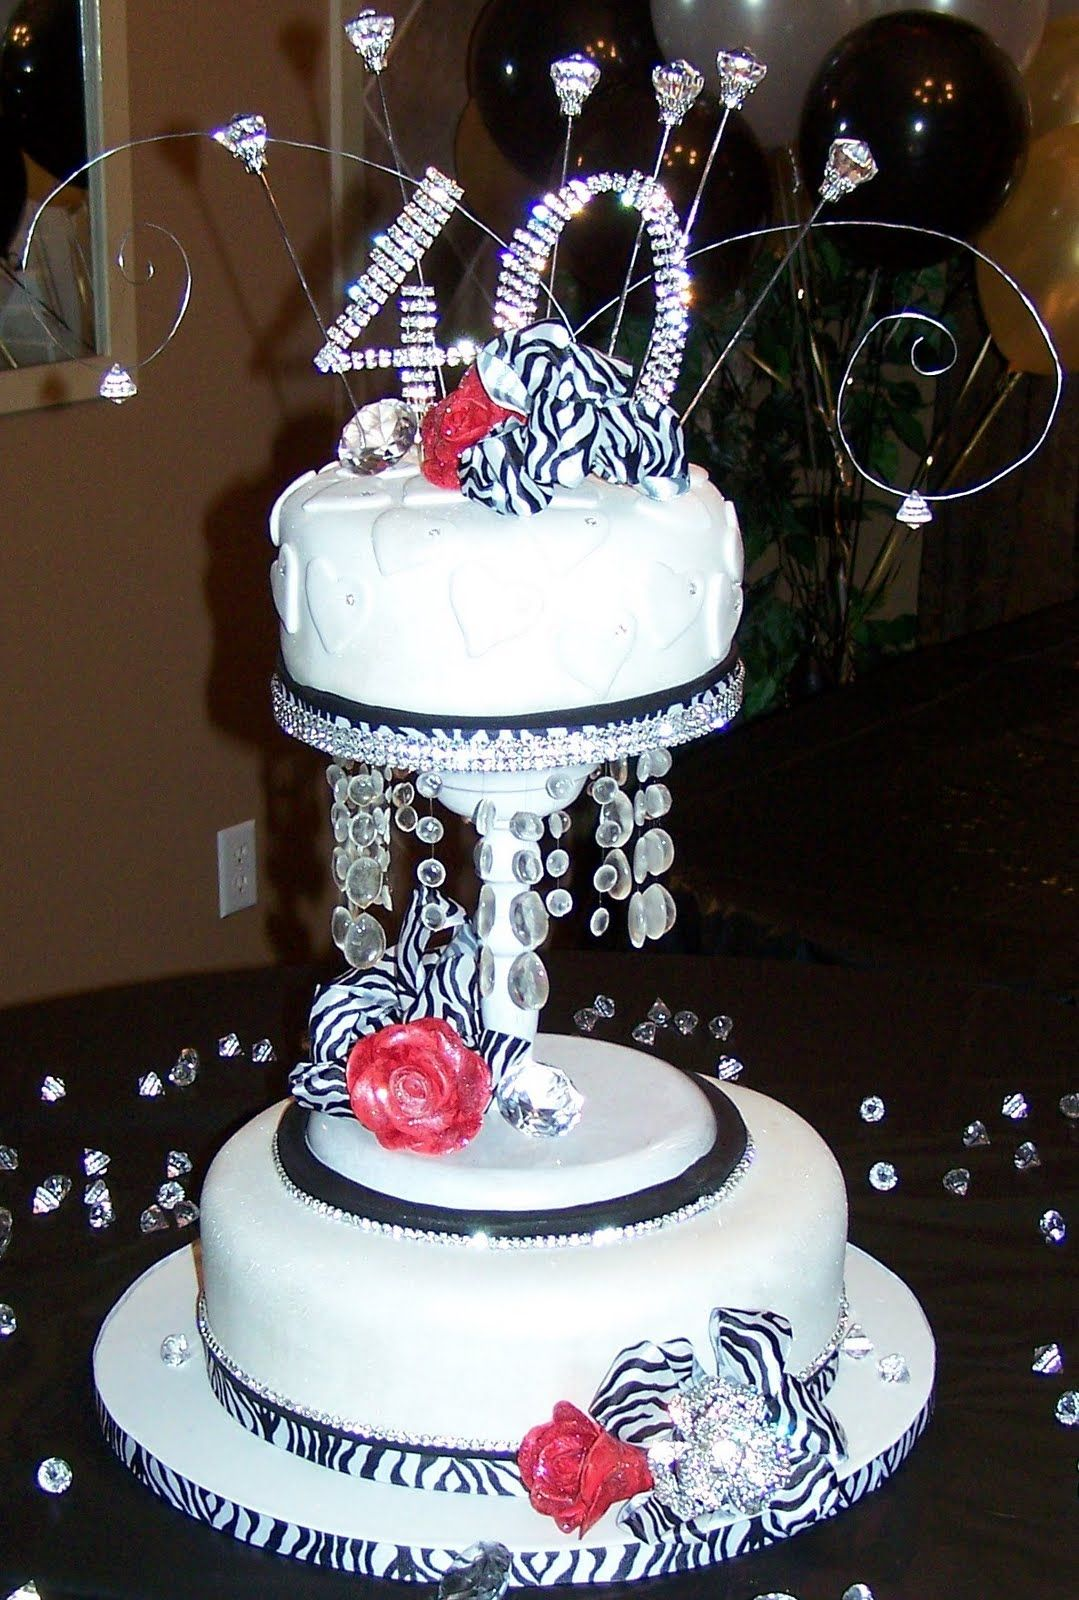 Bling birthday cake designs Pin 40th Birthday Cake Ideas For Women